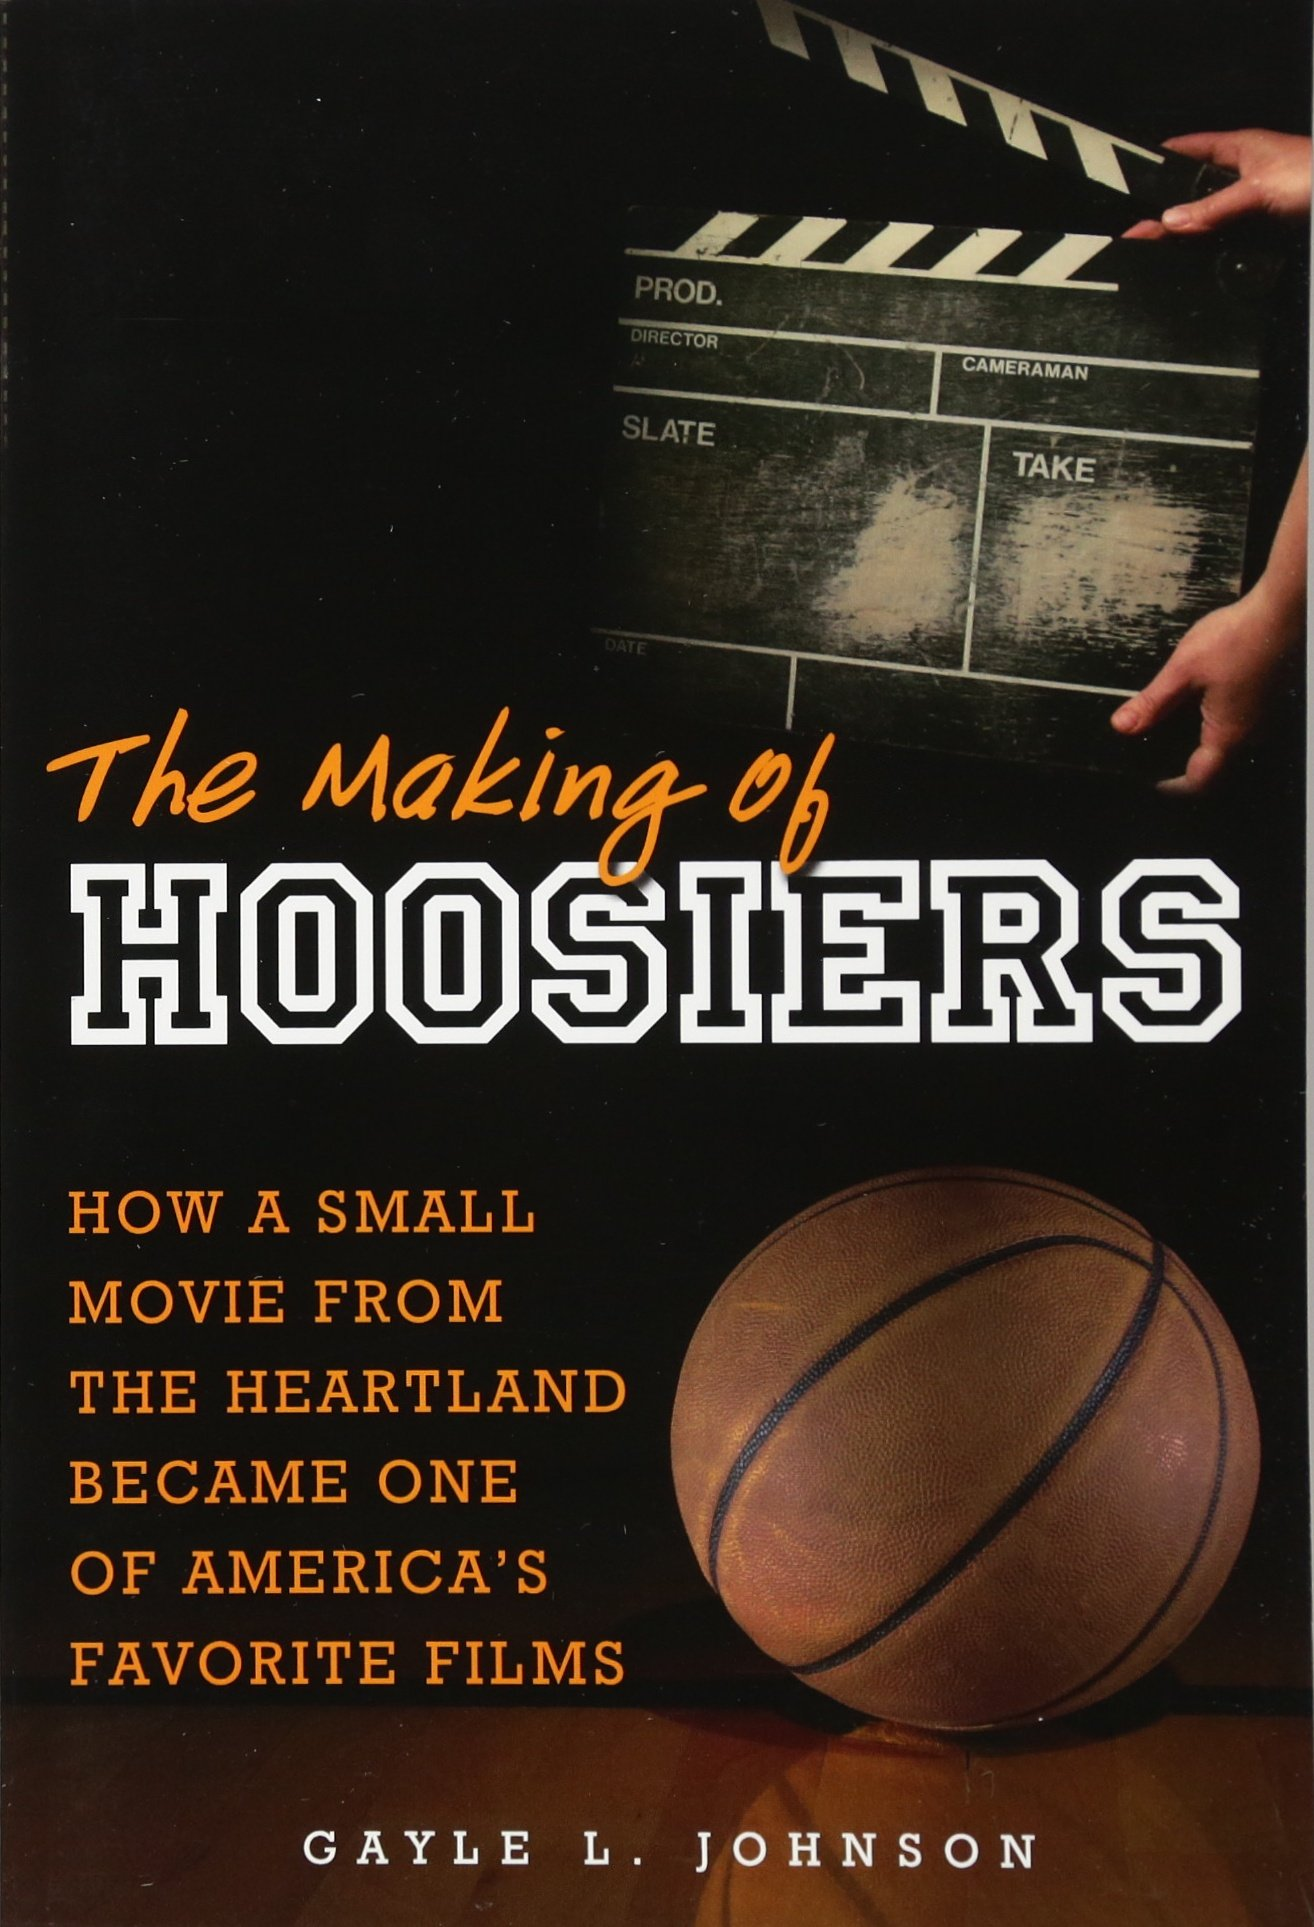 The Making of Hoosiers: How a Small Movie from the Heartland Became One of America's Favorite Films PDF